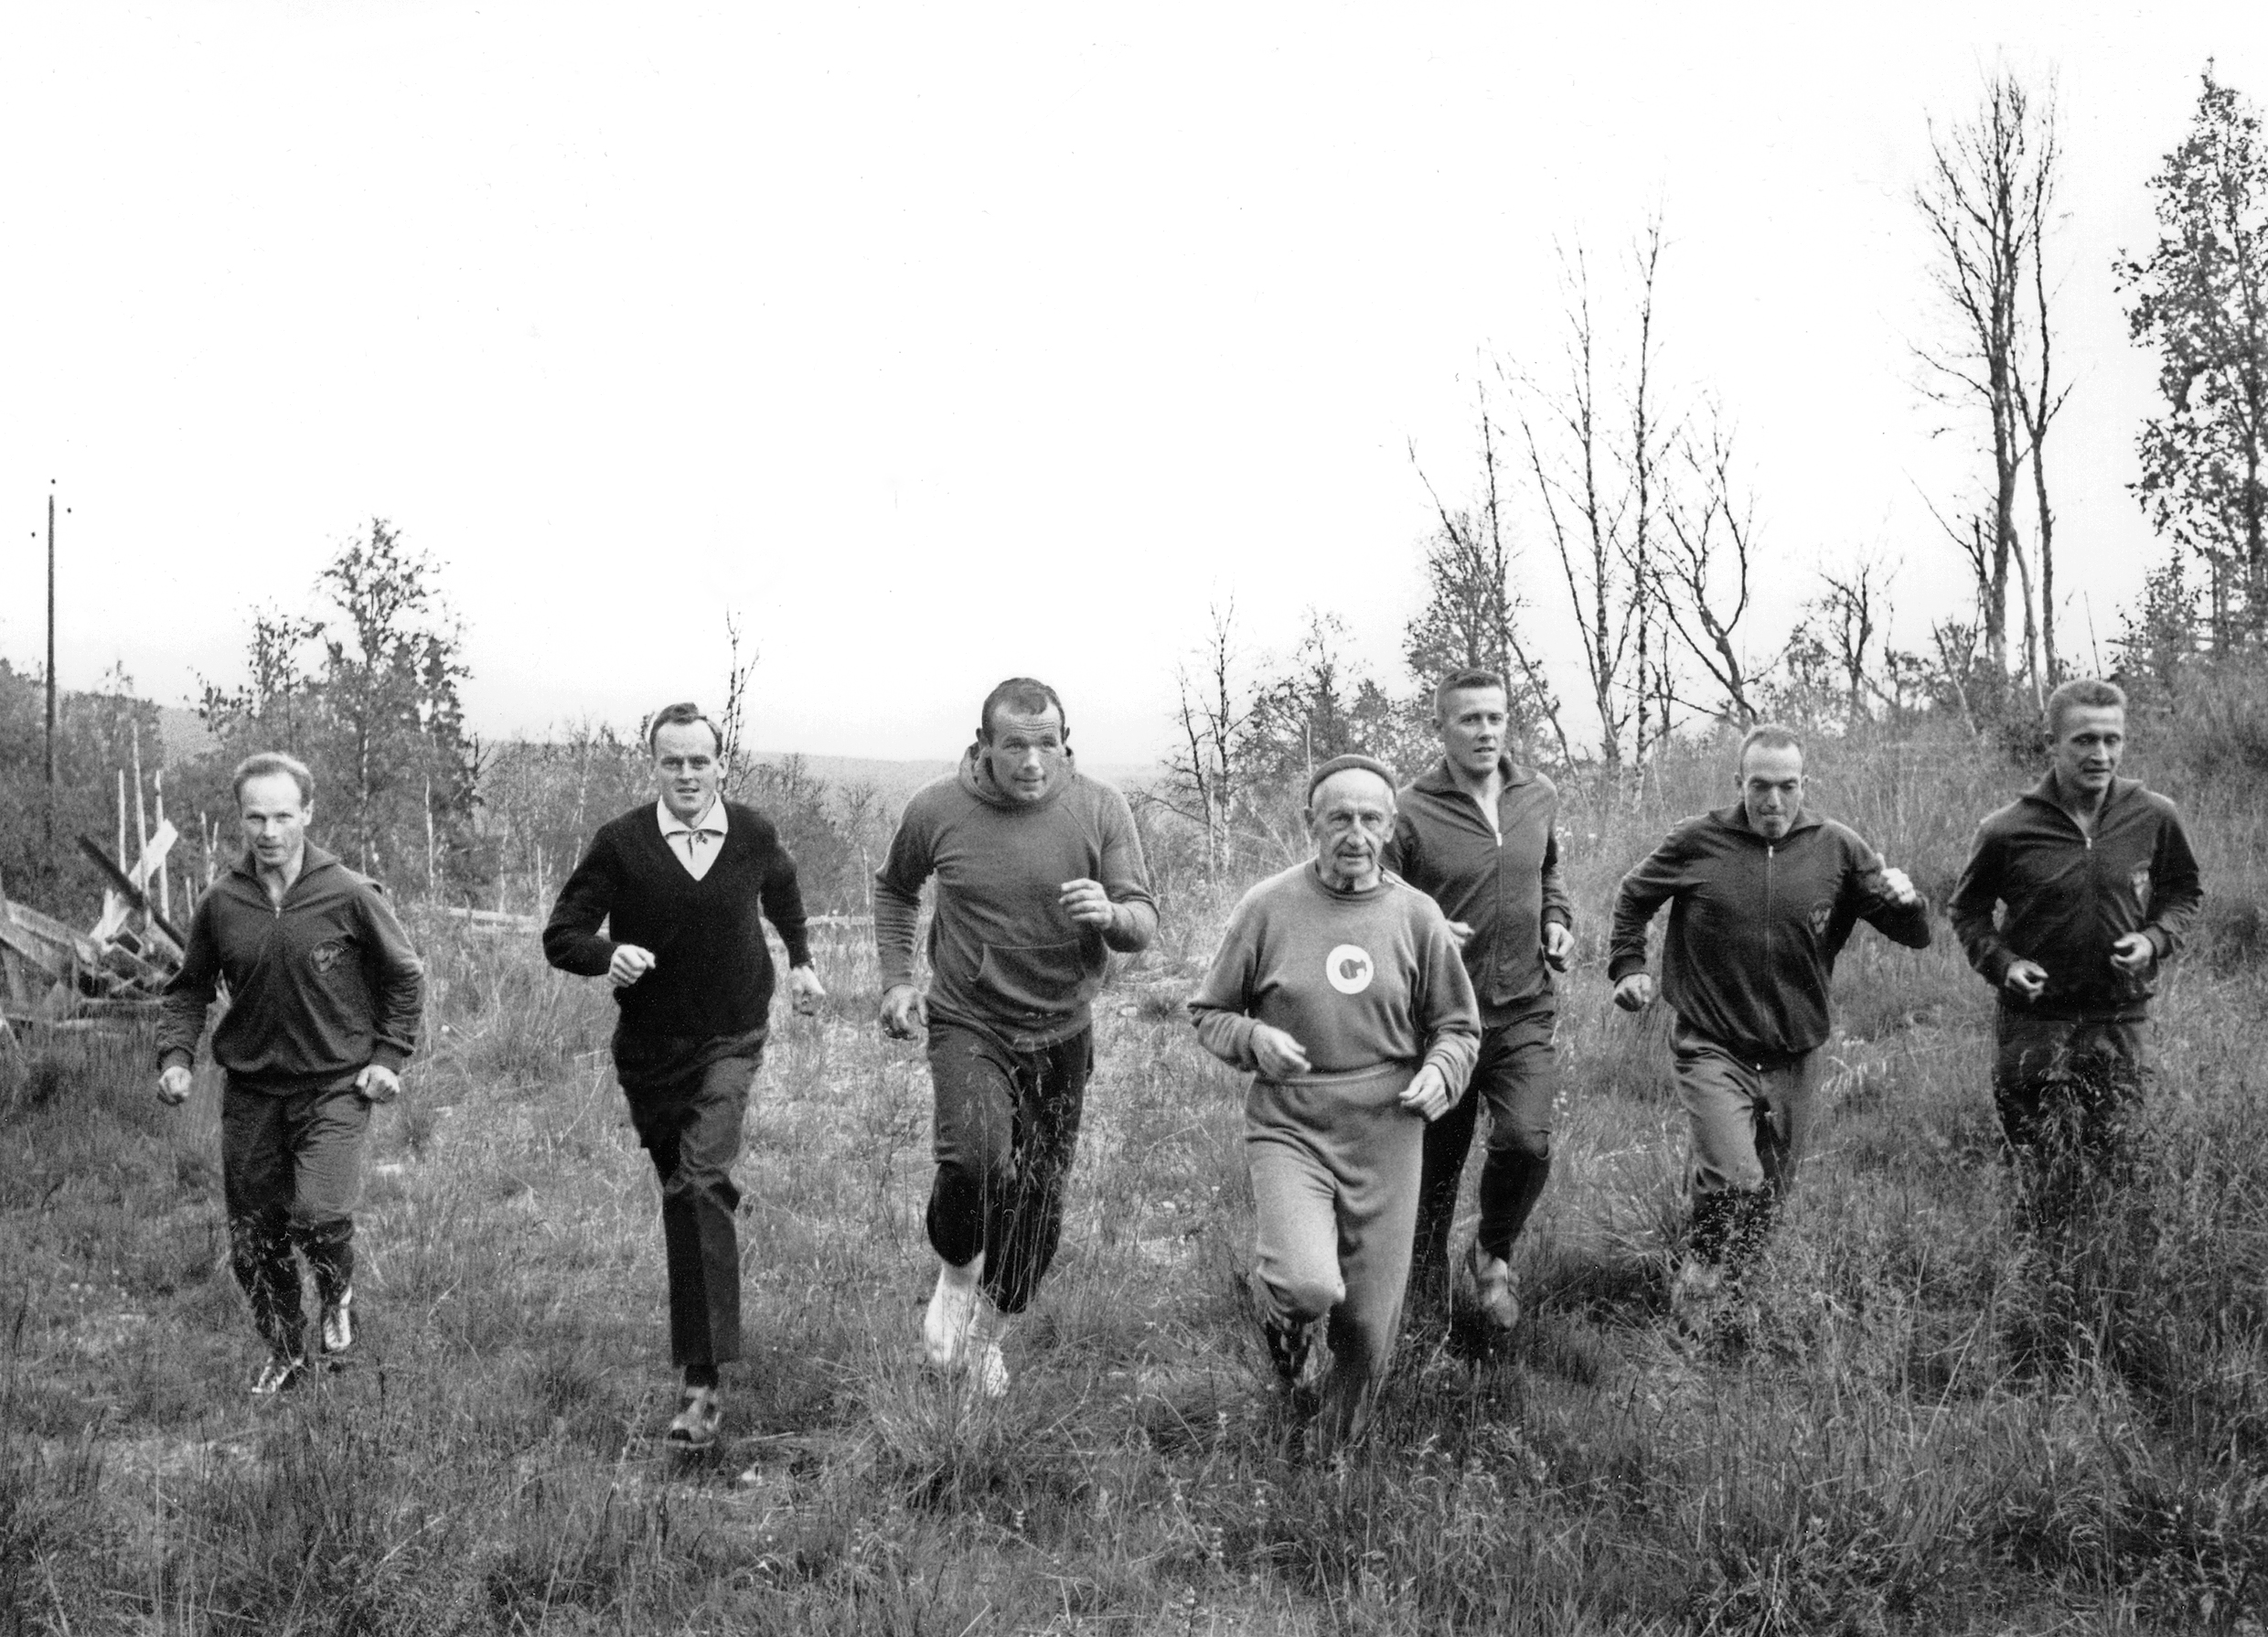 Fartlek training in Vålådalen with Gösta Olander (middle) and several of the largest Swedish male sports stars of the time. August 1962. Photo: Halling's photo / Jamtli's photo collections